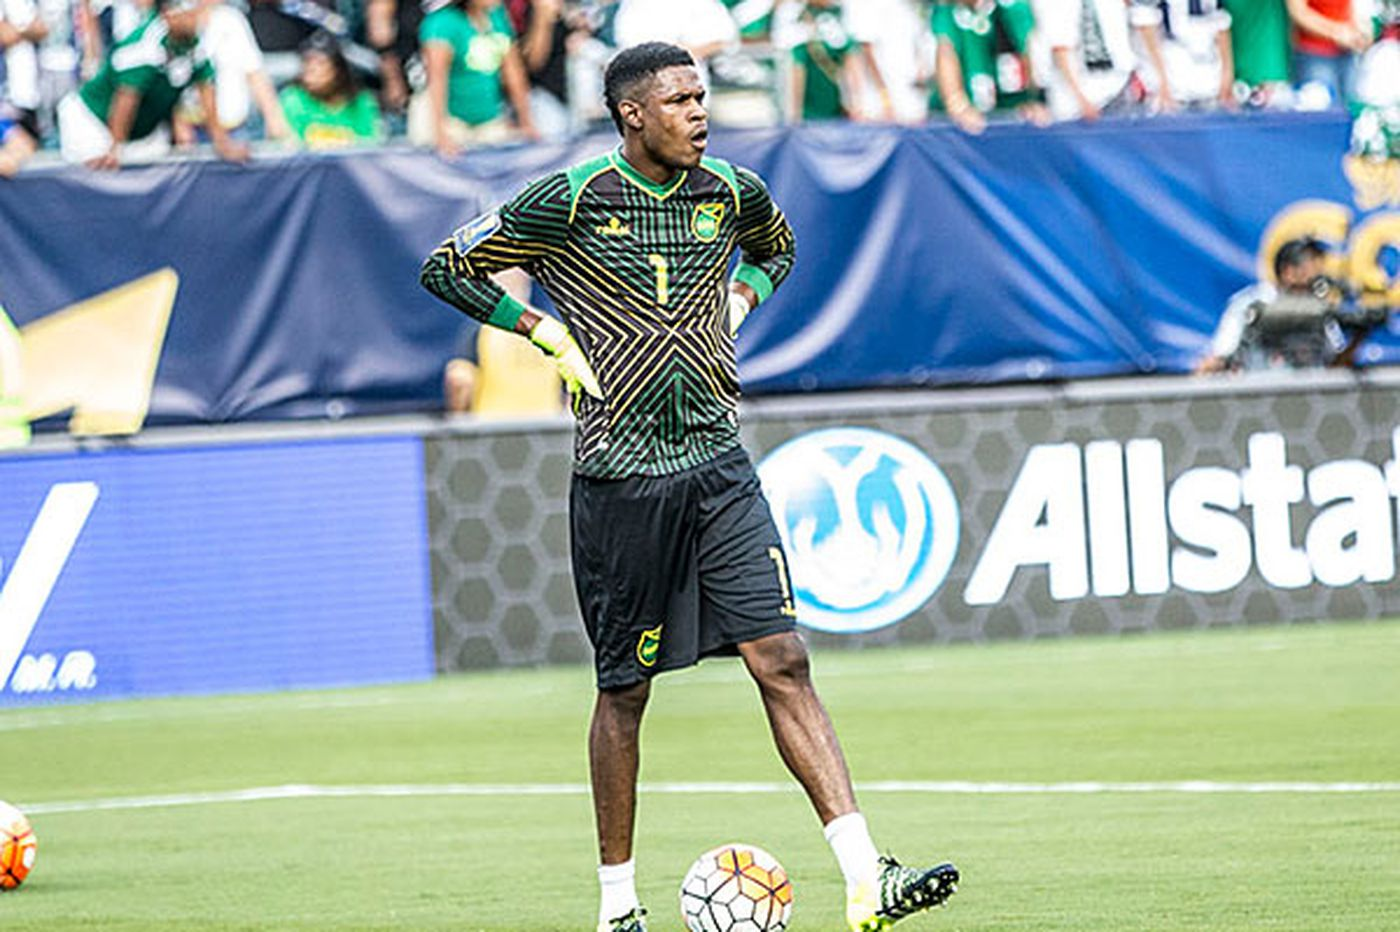 Union goalie Andre Blake getting chance at fresh start